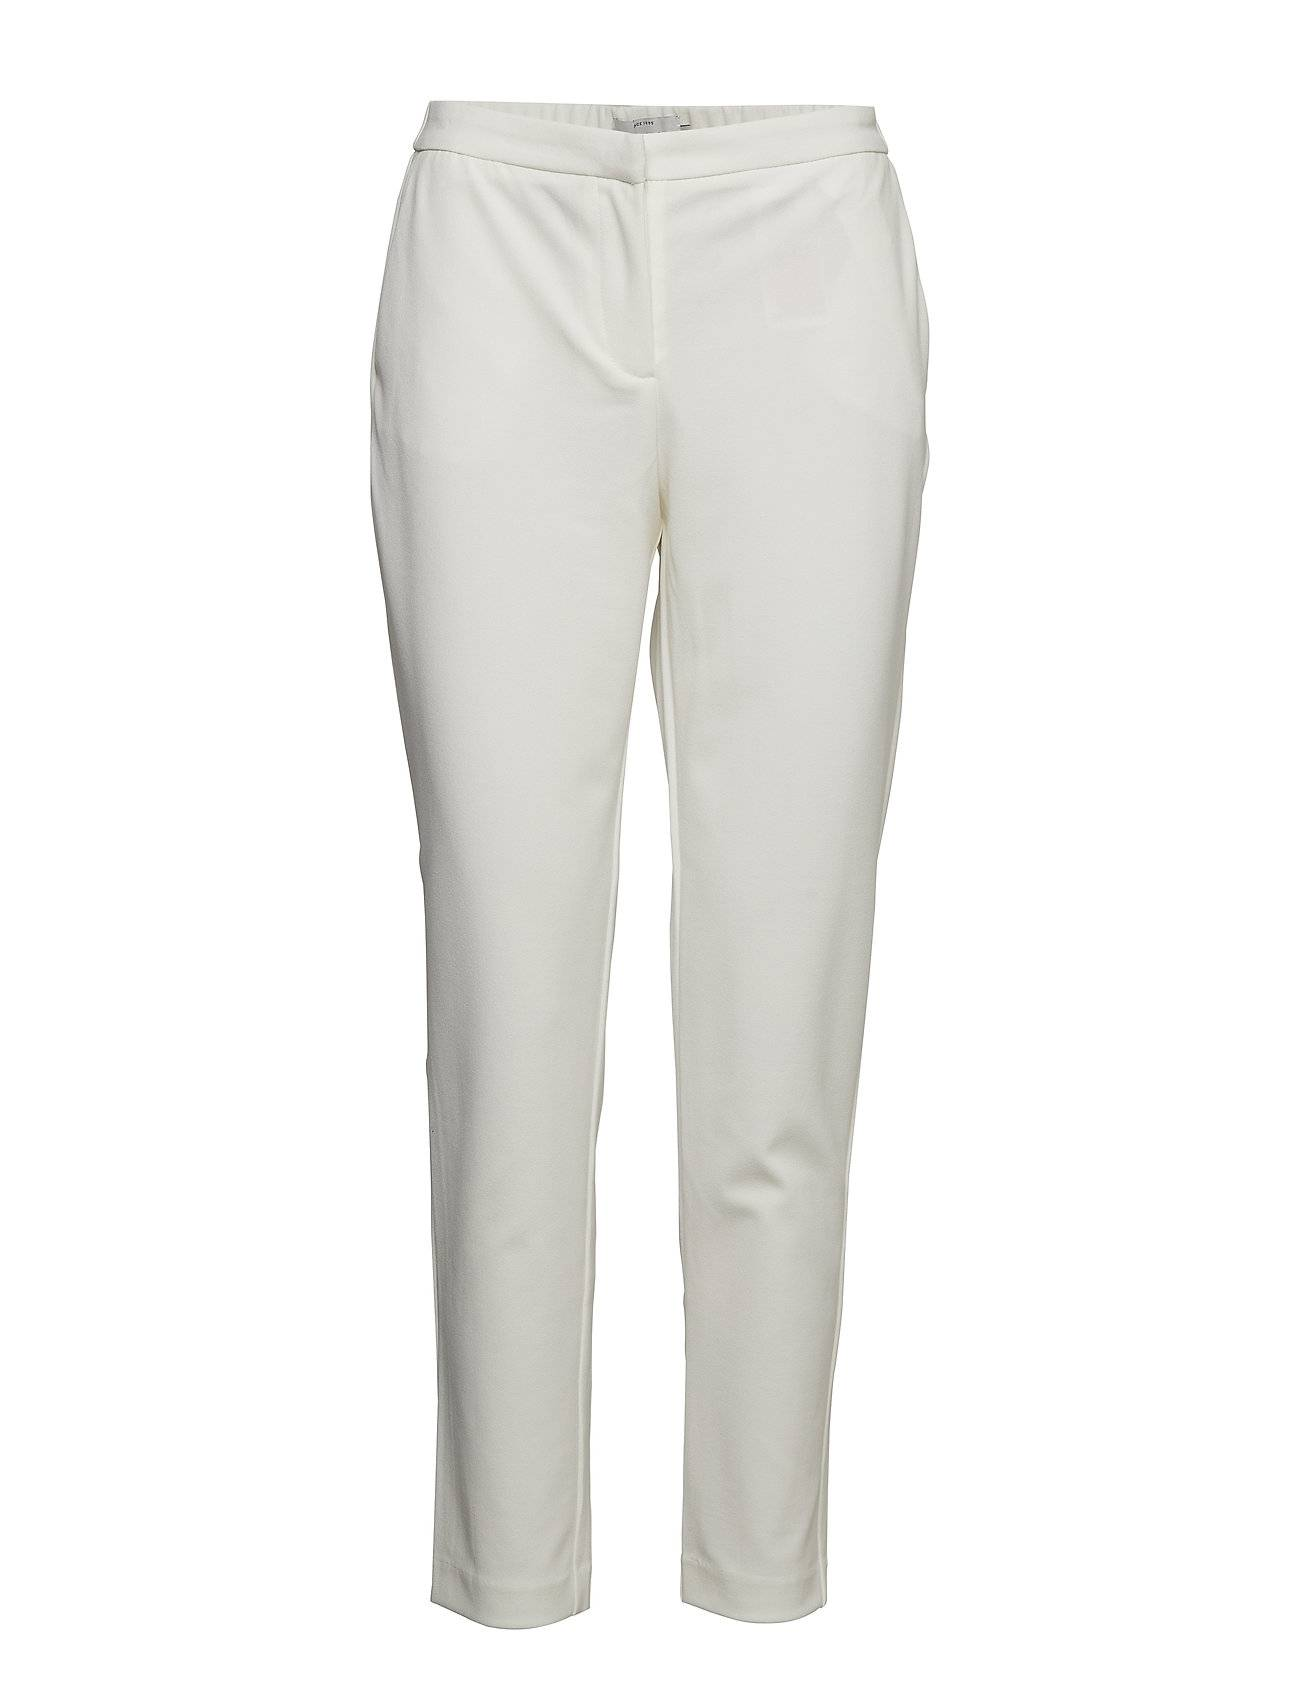 Image of ONLY Onlcarolina Cigarette Pants Cc Tlr Suoralahkeiset Housut Valkoinen ONLY